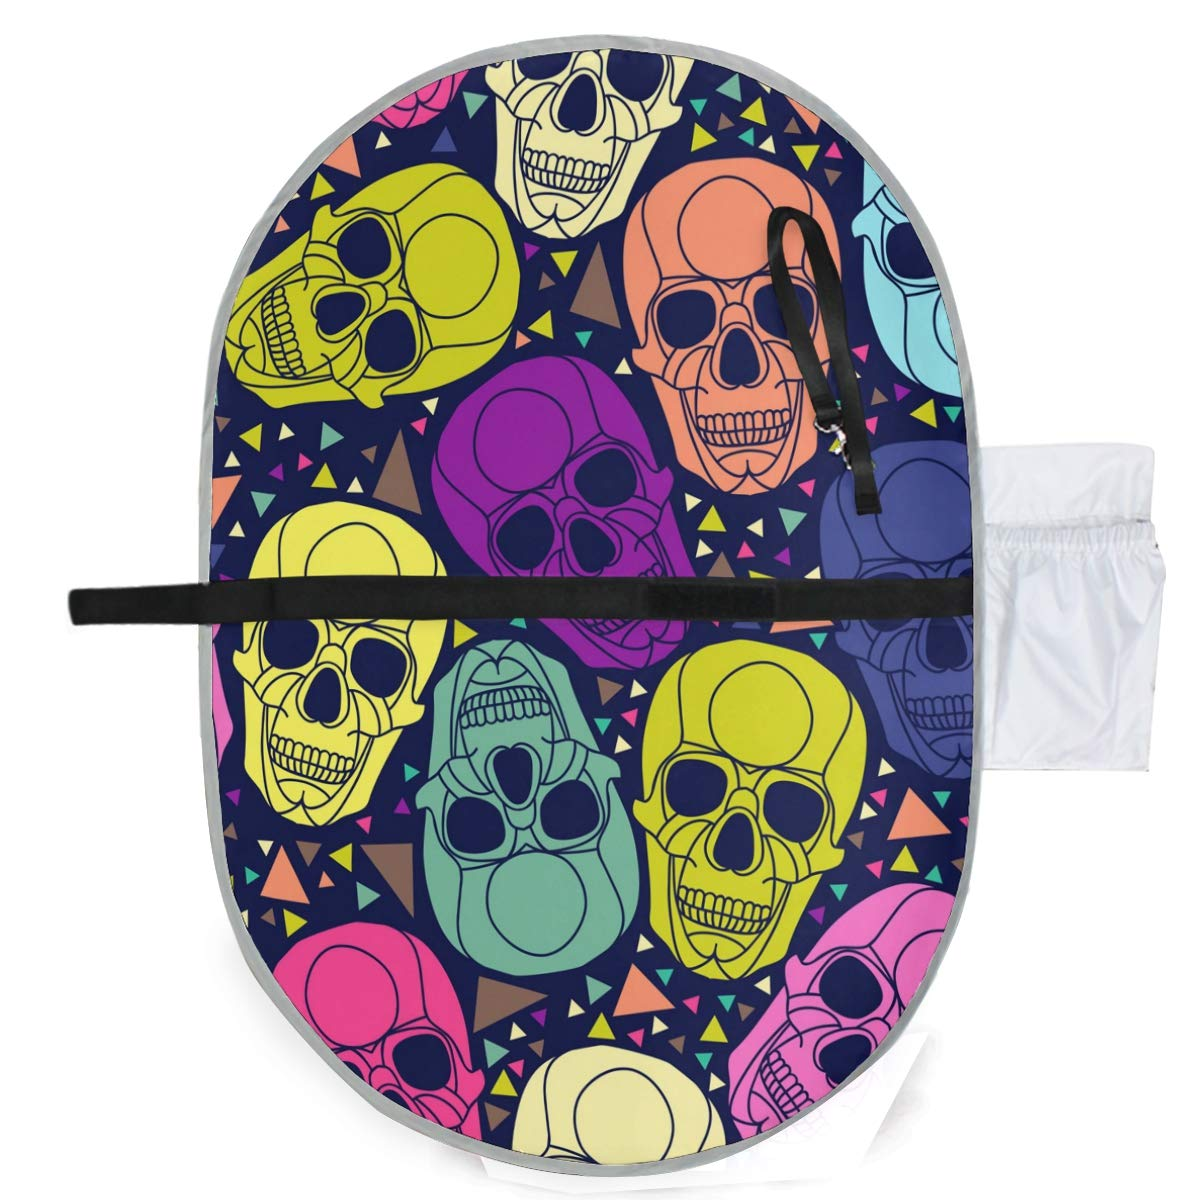 Waterproof Washable Baby Diaper Changing Pad Mat Geometric Colorful Skulls Portable and Foldable Infant Large Nappy Mat 27x20 inch